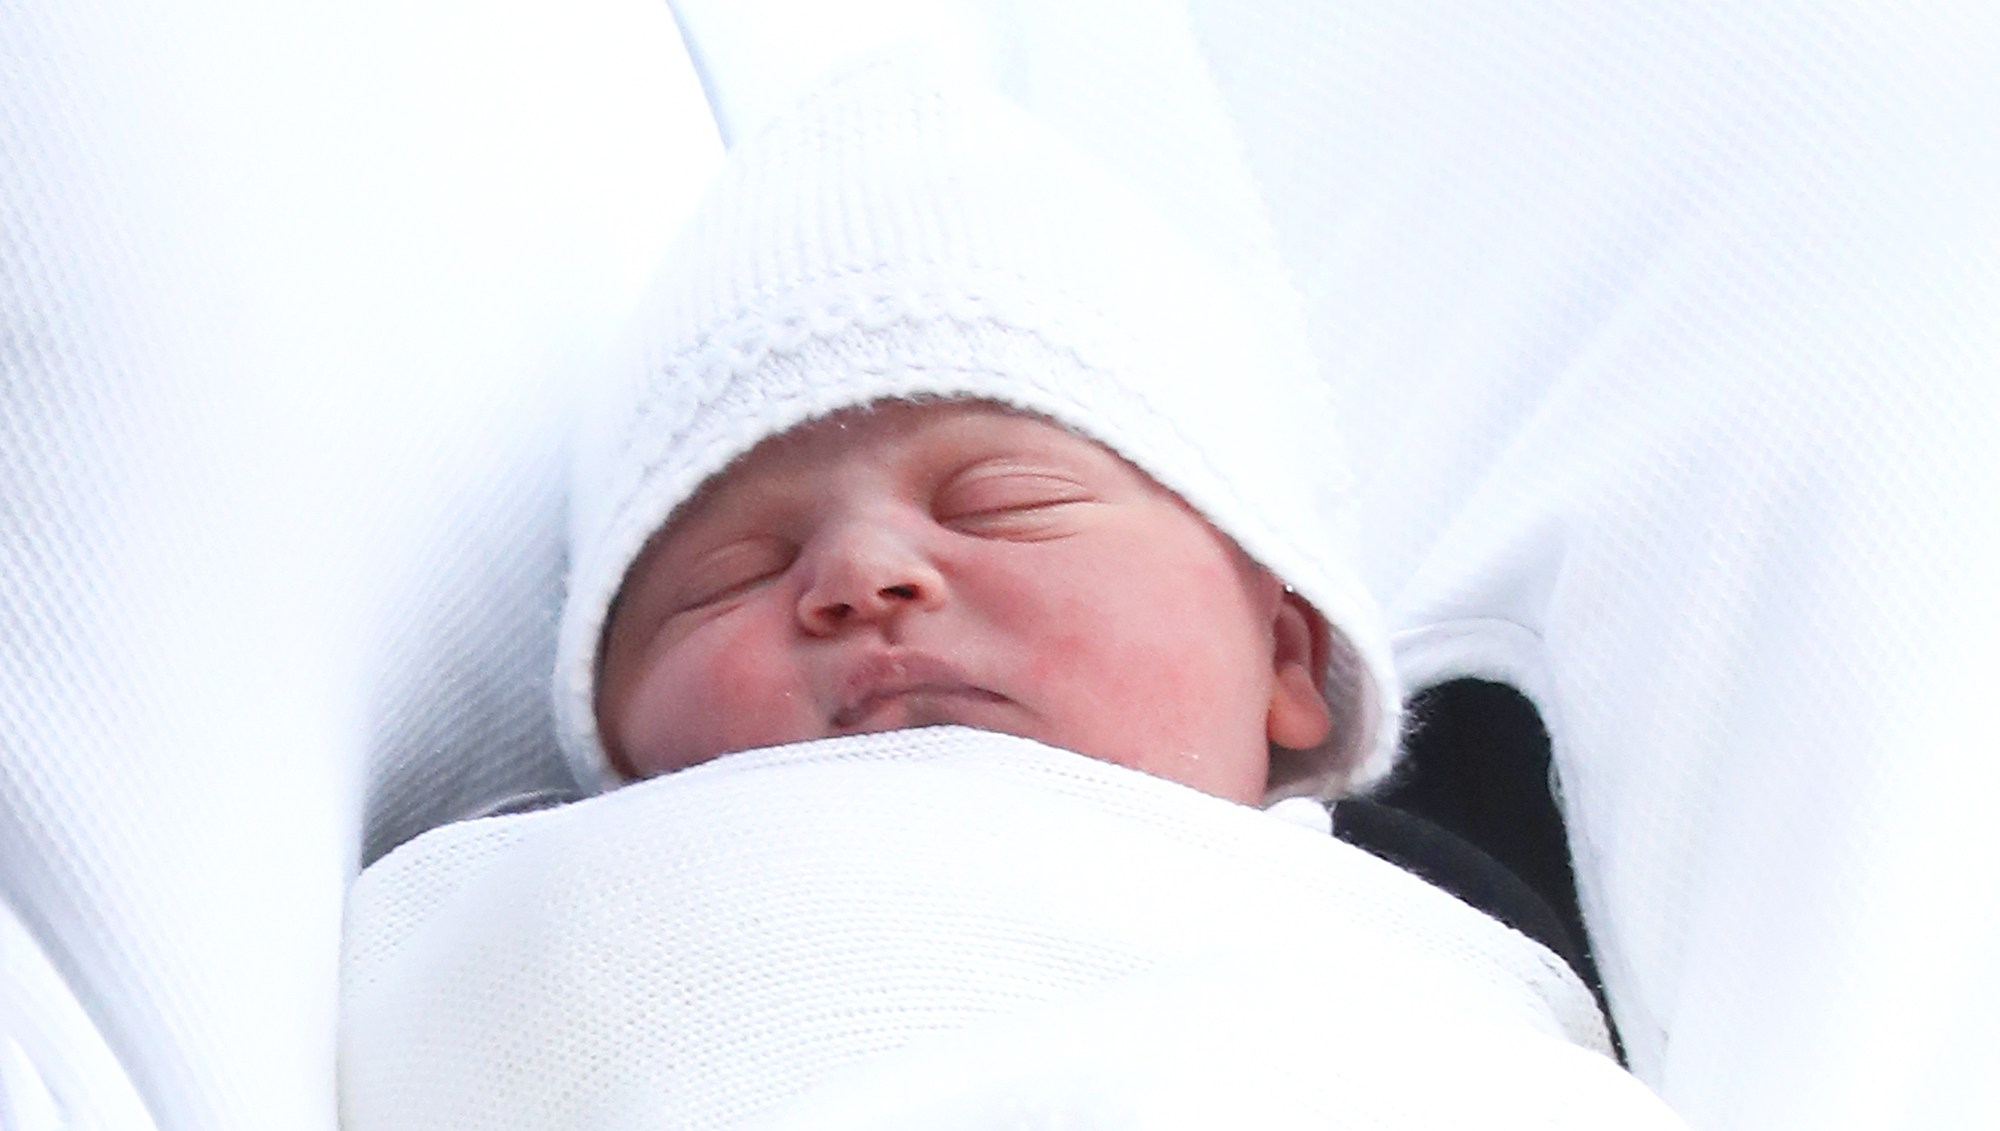 The new born son Prince Louis of Cambridge of Prince William and Kate Middleton as they depart the Lindo Wing at St Mary's Hospital on April 23, 2018 in London, England.